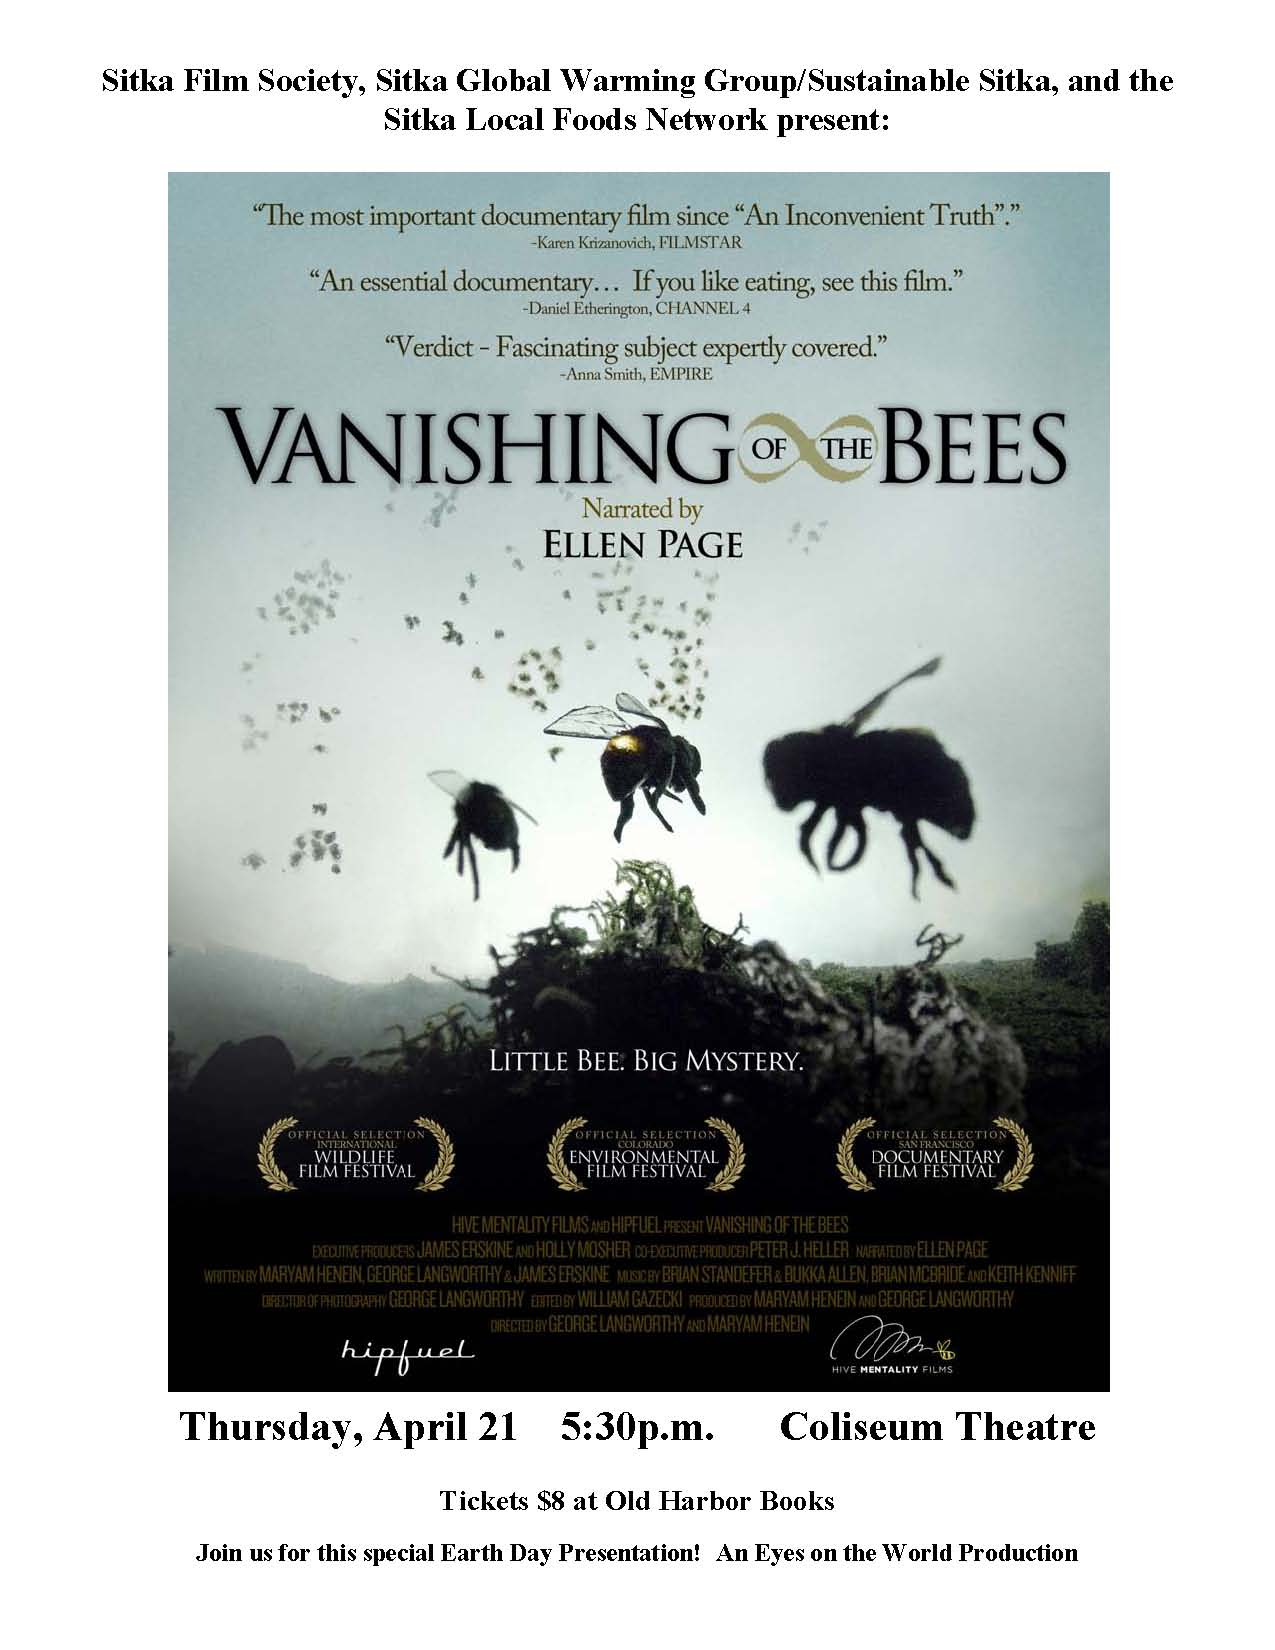 vanishing of the bees Watch vanishing of the bees - documentary on directv it's available to watch researchers investigate a worldwide collapsing of honeybee colonies pxvdtpa012.